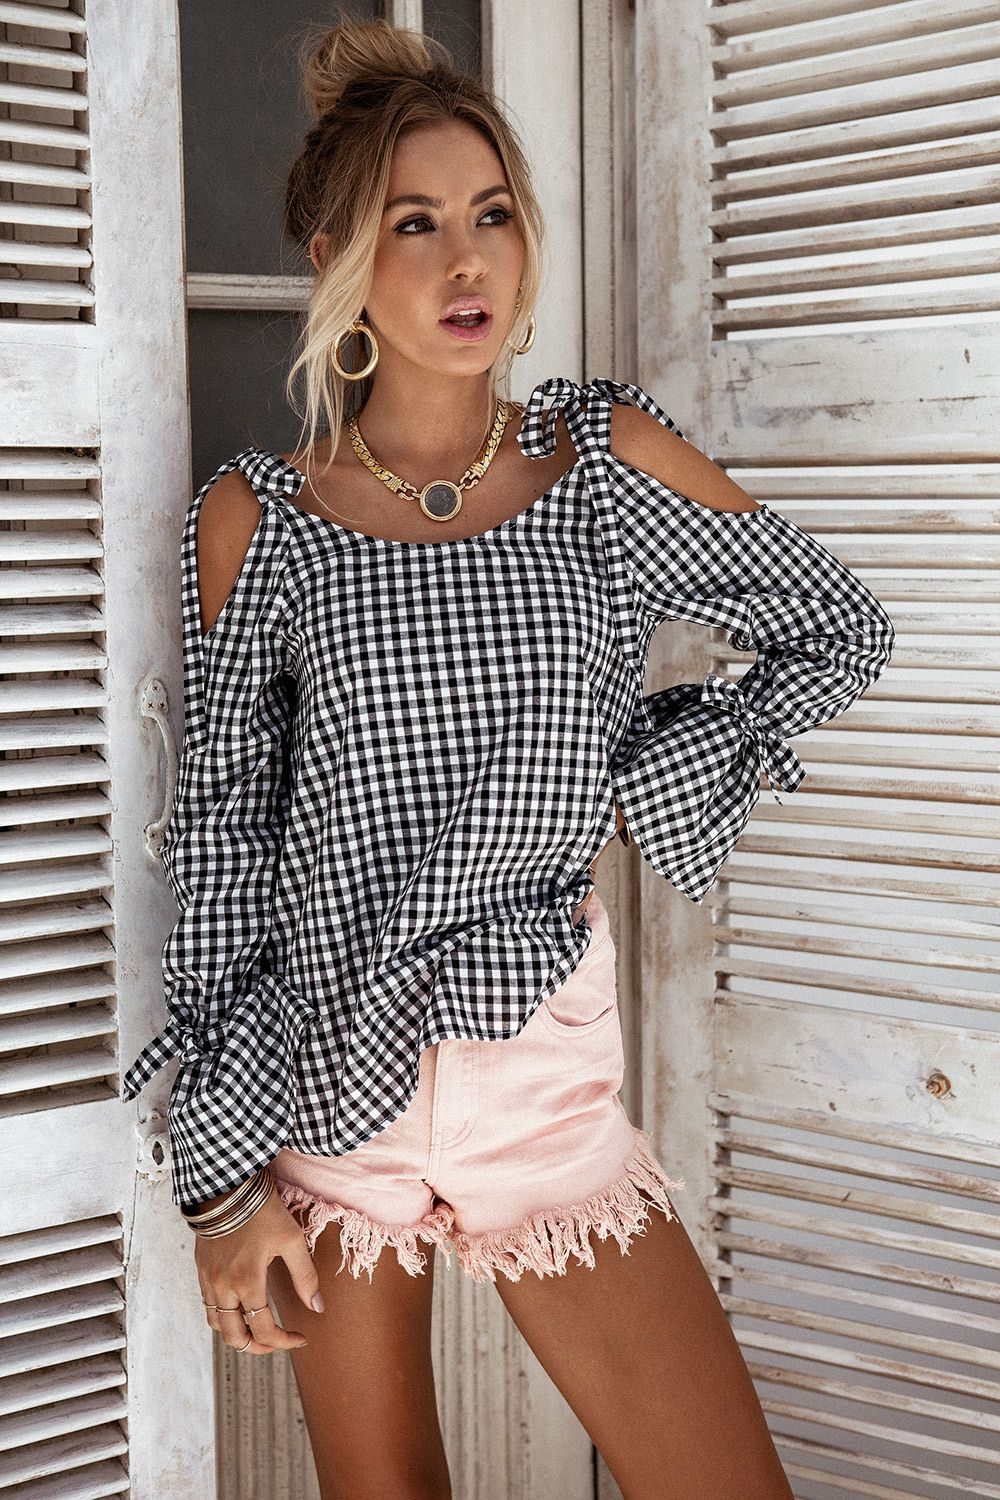 c2c922ac900f4 The super cute Mimi Gingham Top is made from a lightweight cotton fabric in  a black and white gingham print. It is a cold shoulder style and features  ...